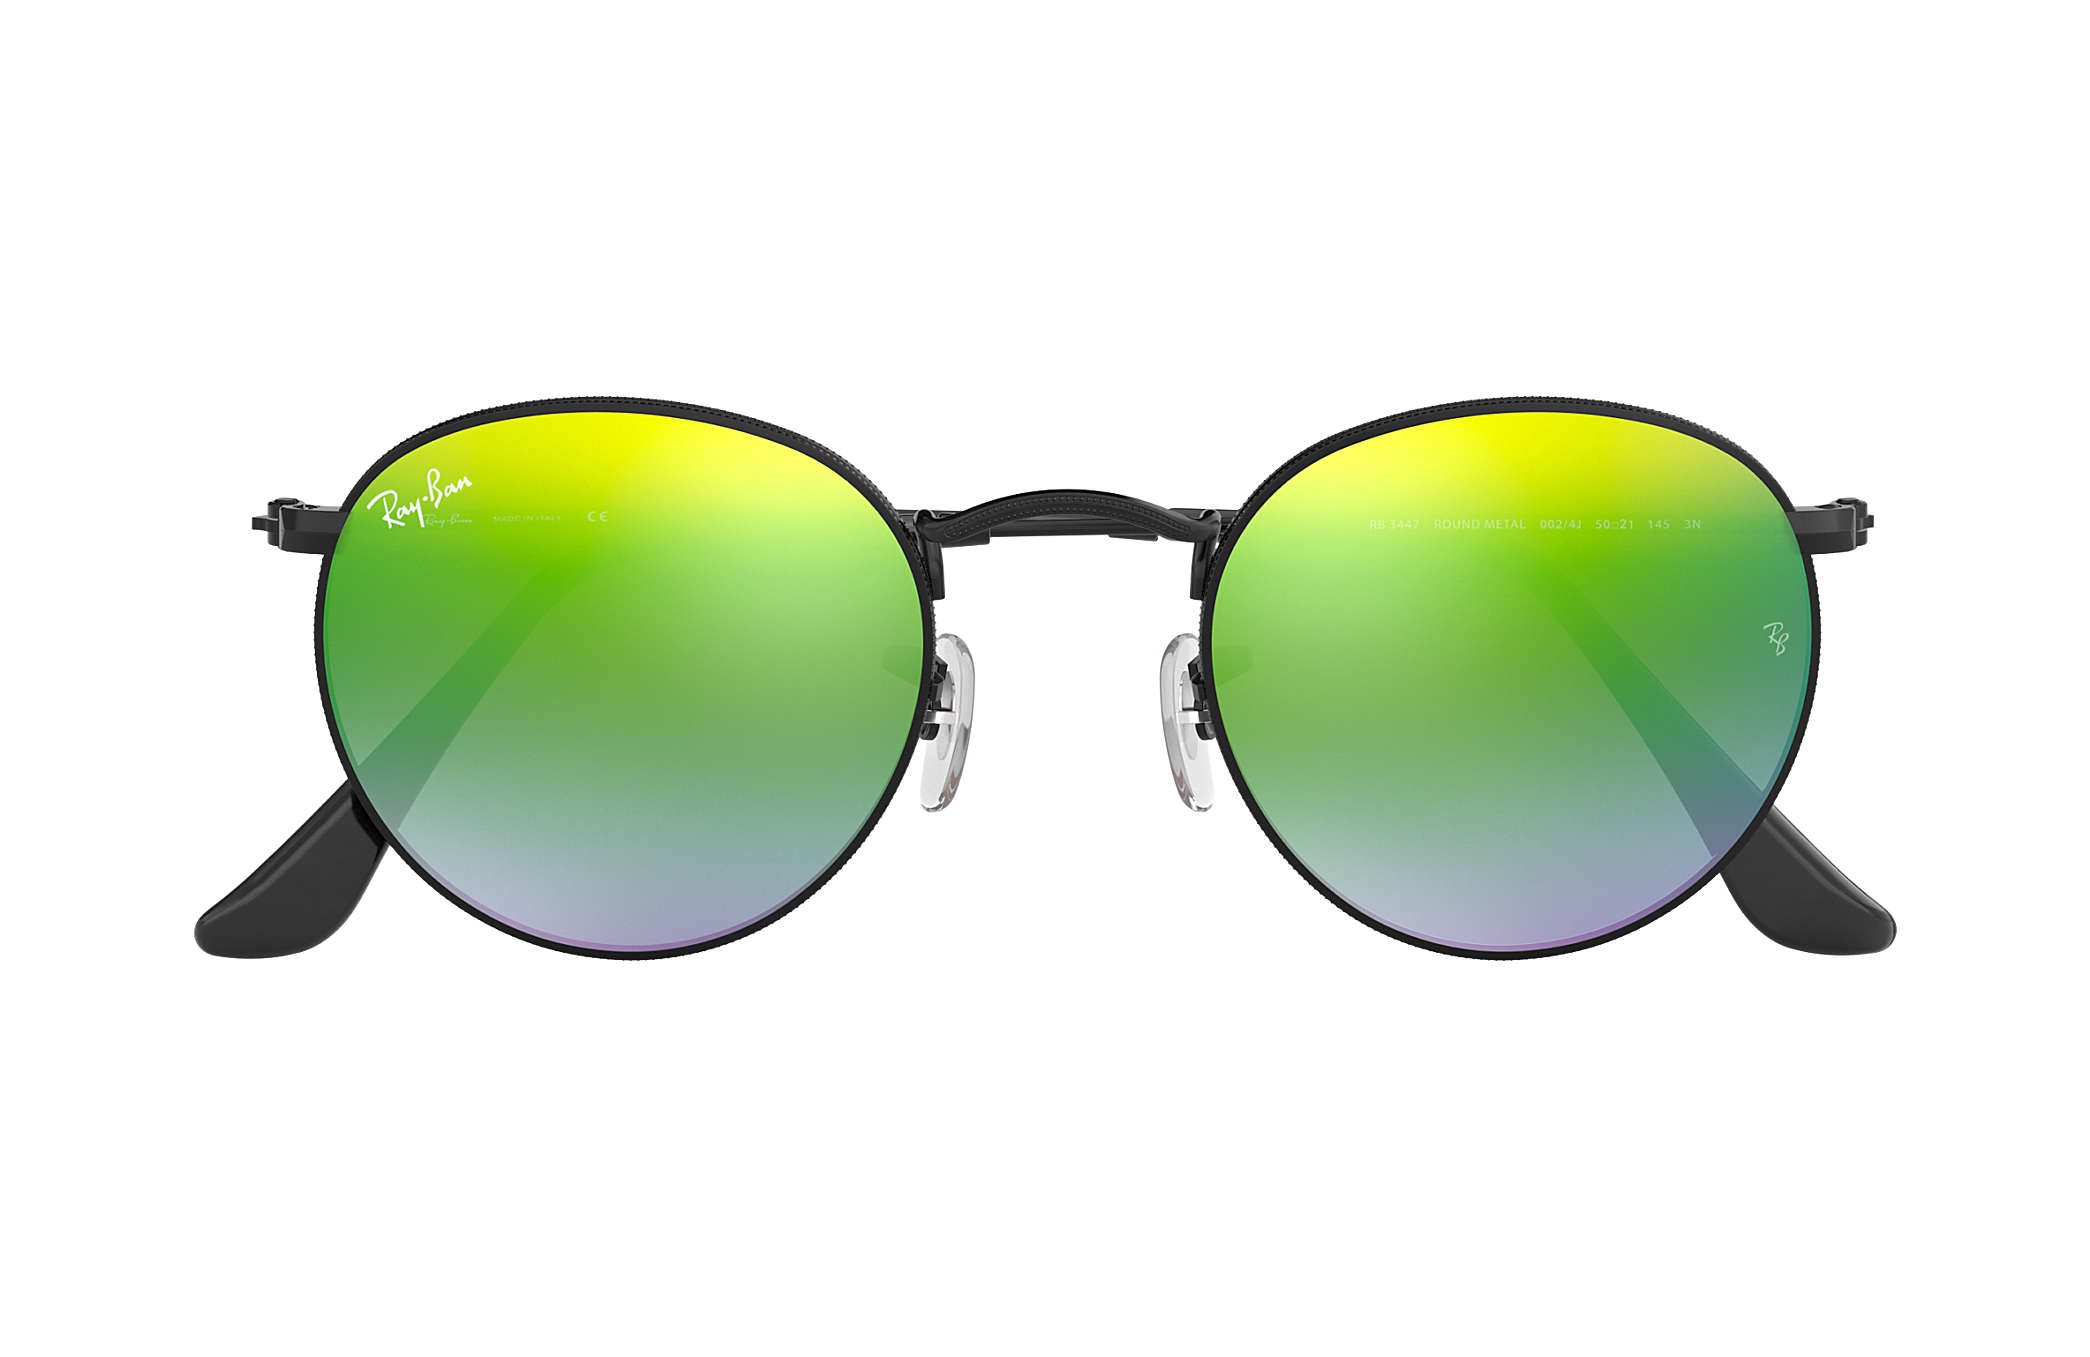 391220f9514 Ray-Ban Round Flash Lenses Gradient RB3447 Black - Metal - Green ...